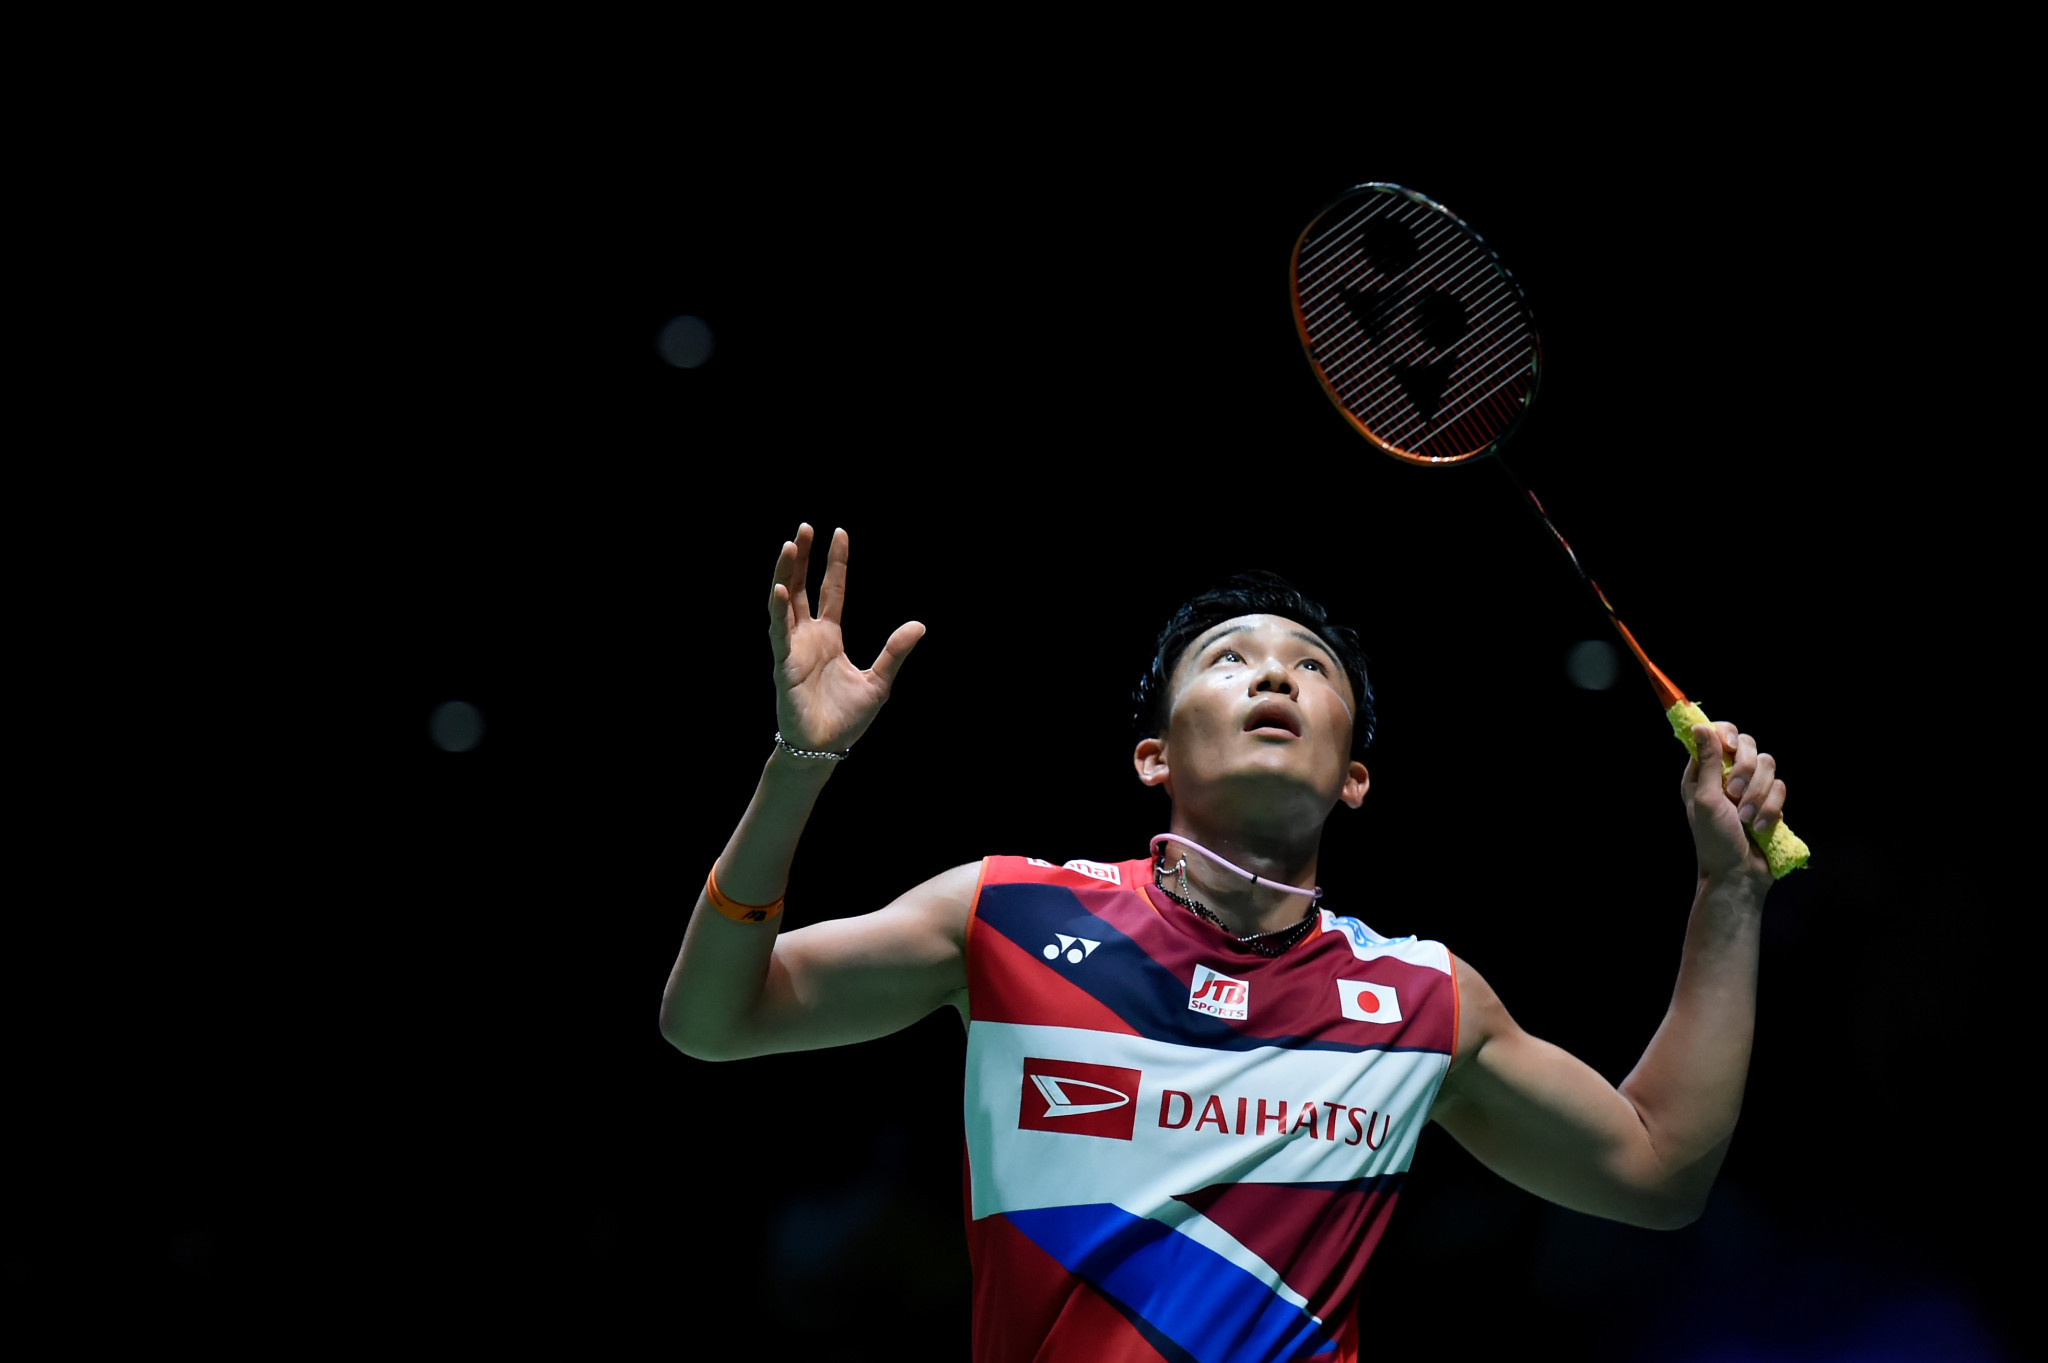 The world's top ranked badminton player Kento Momota returned to competition for the first time since his Malaysia Masters victory in January